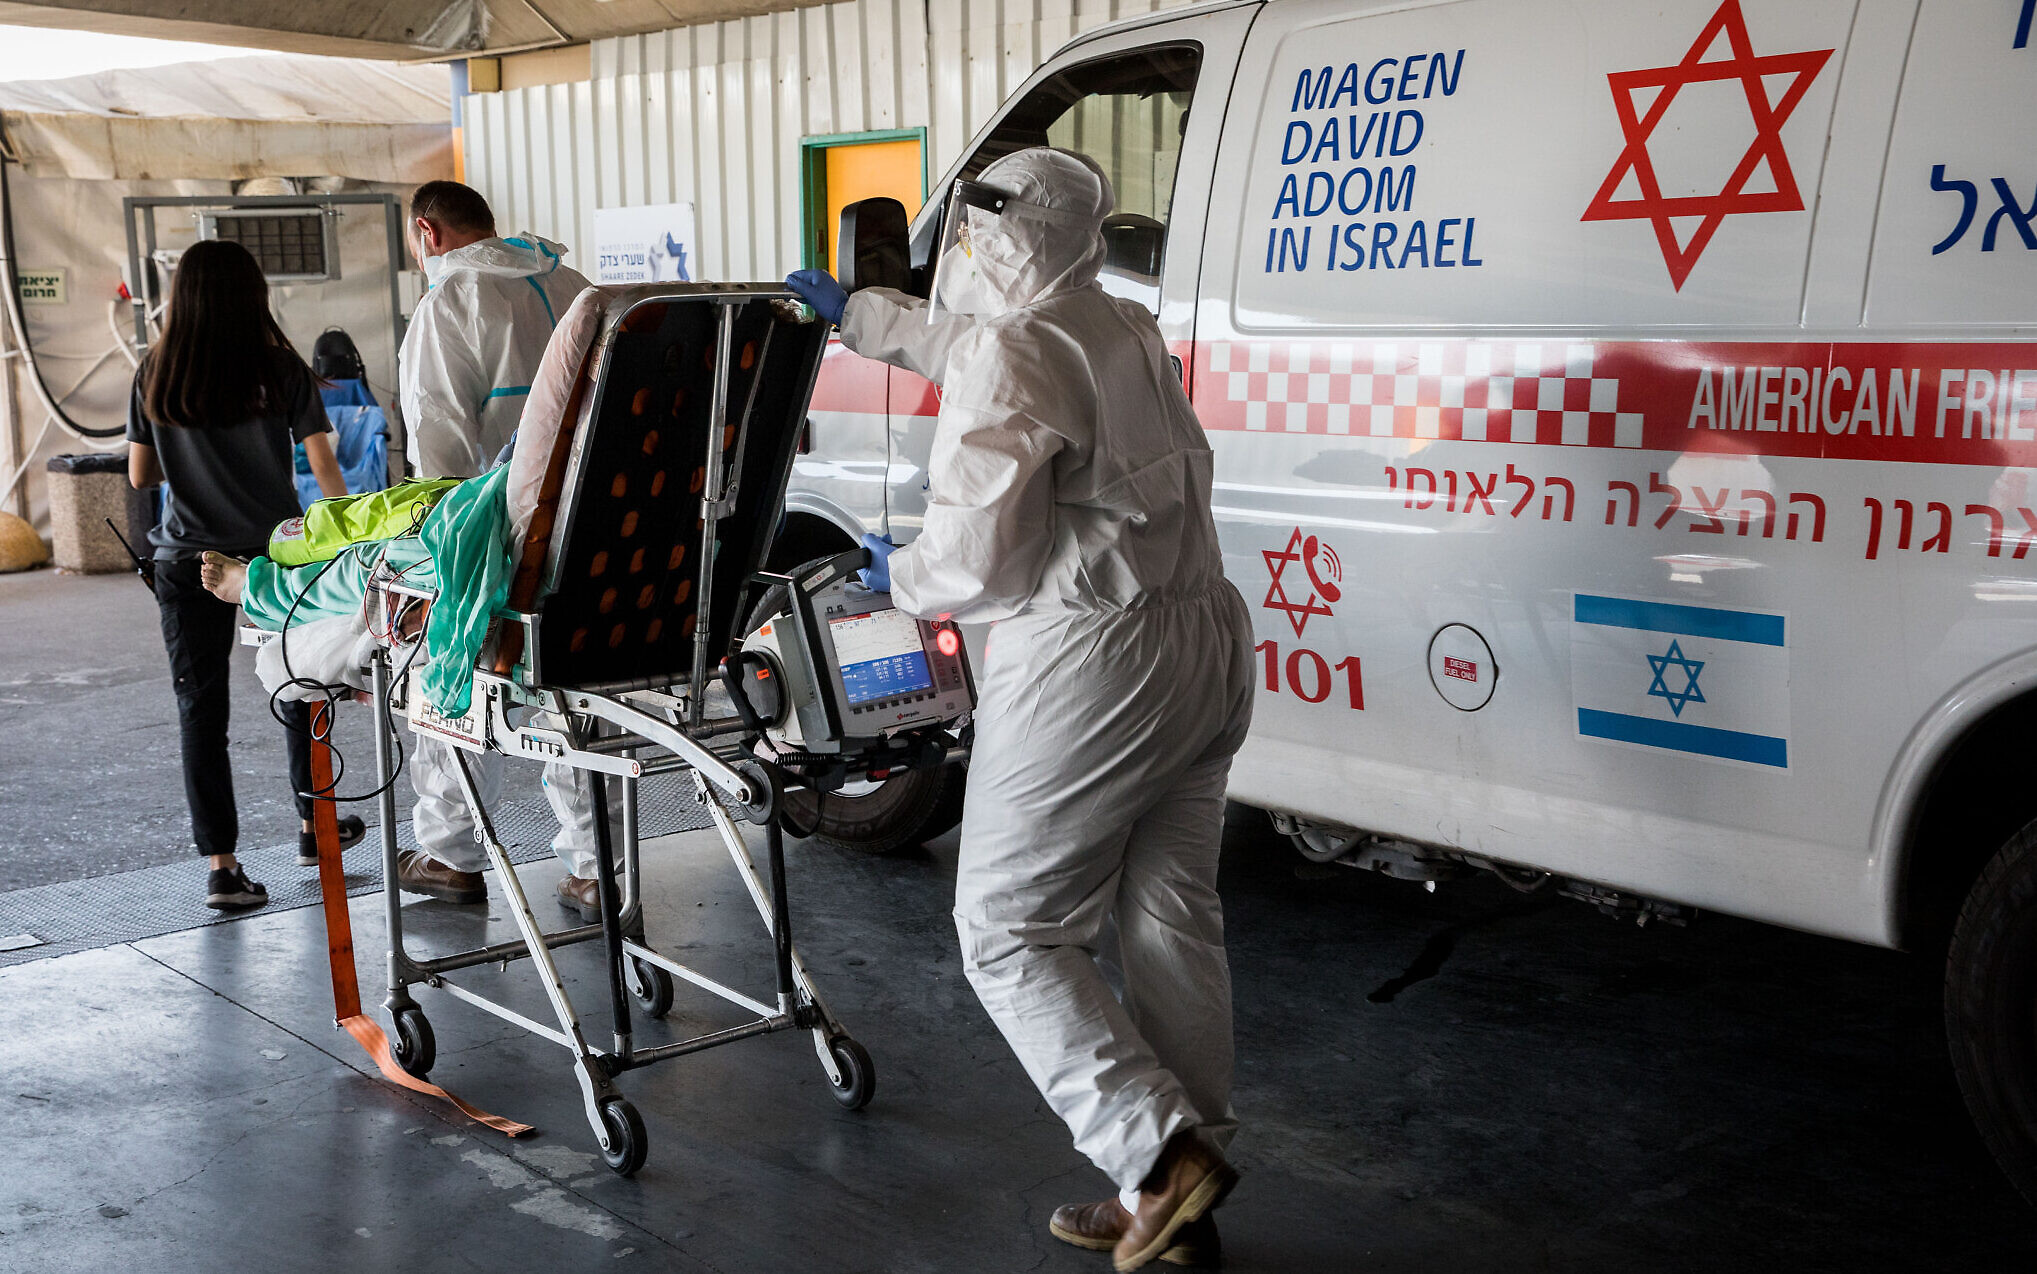 Israel Surpasses Us In Daily Covid 19 Deaths Per Capita The Times Of Israel